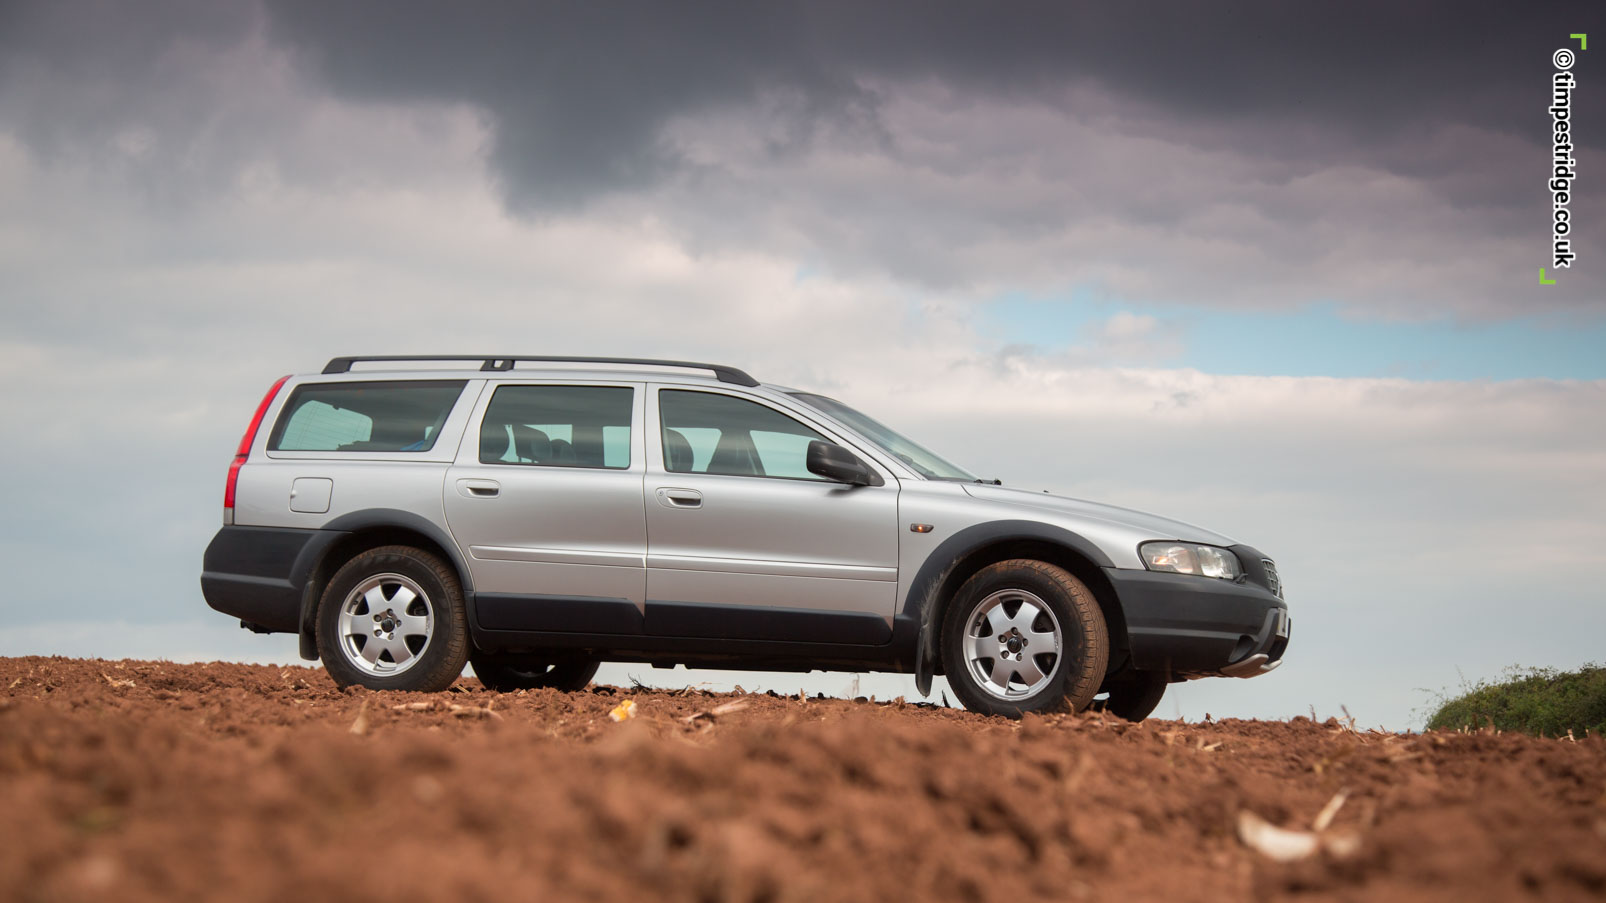 Volvo XC70: reviews of owners and photos 95